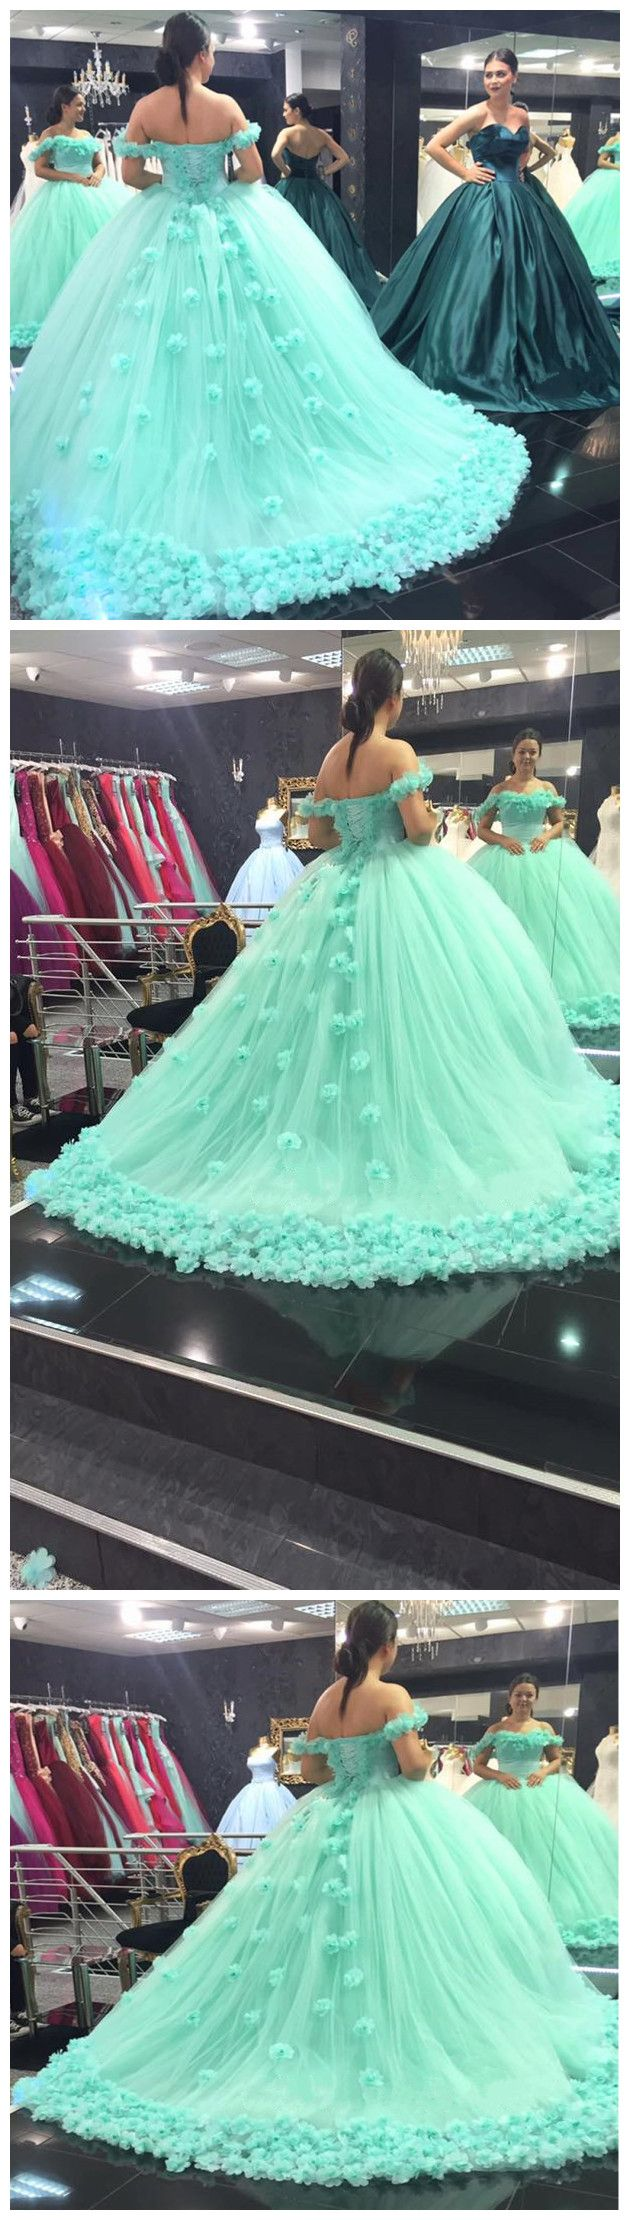 New Arrival Prom Dress,Modest Prom Dress,mint green quinceanera